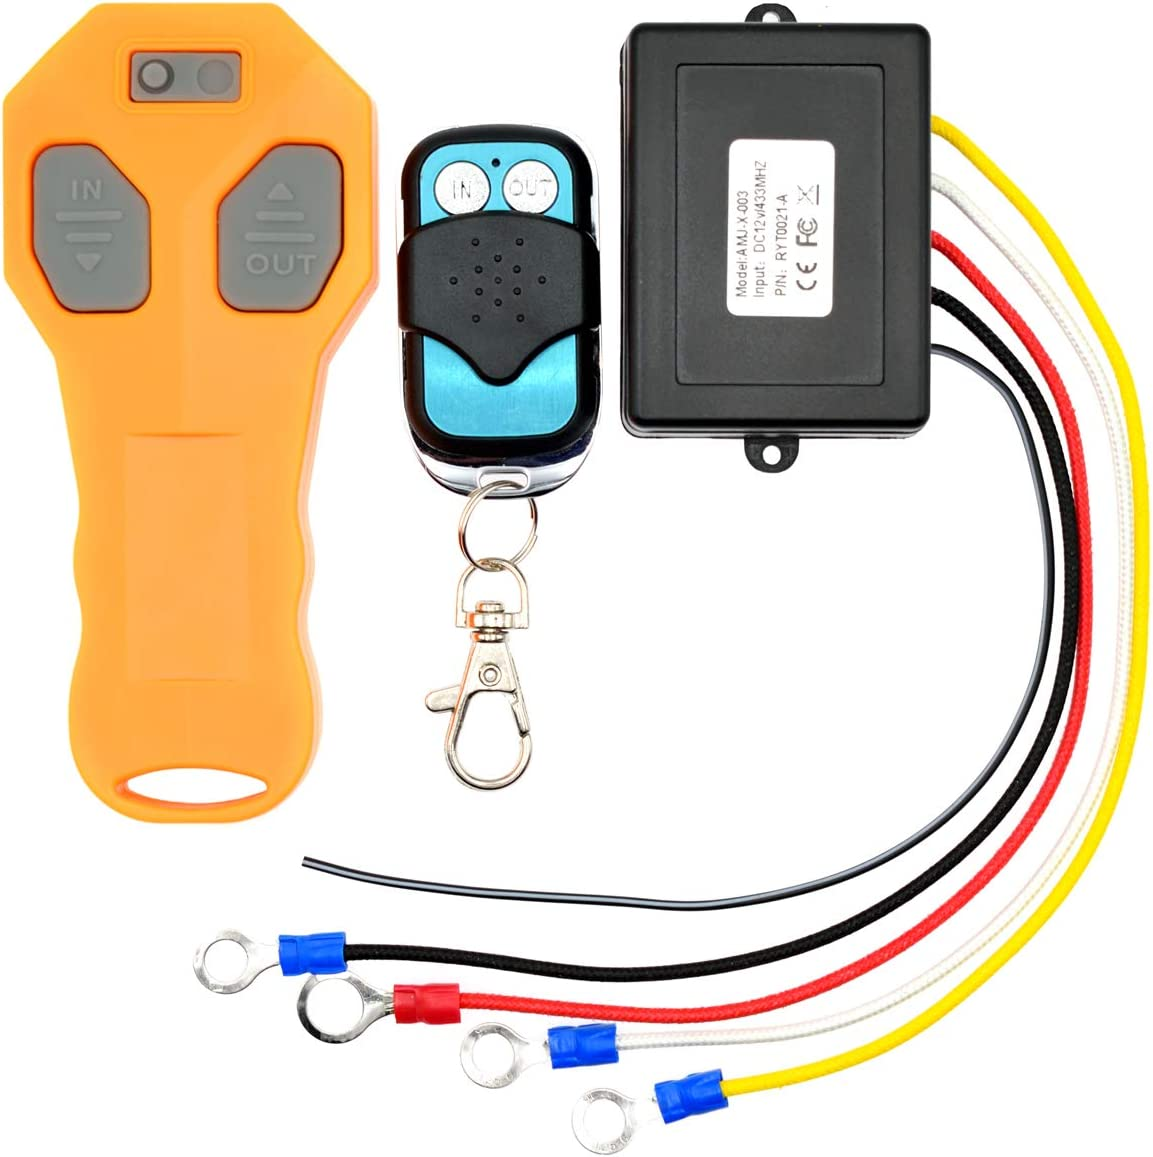 Royitay Wireless Winch Remote Control Ranking Detroit Mall TOP1 Kit ATV Truck SUV for Jeep